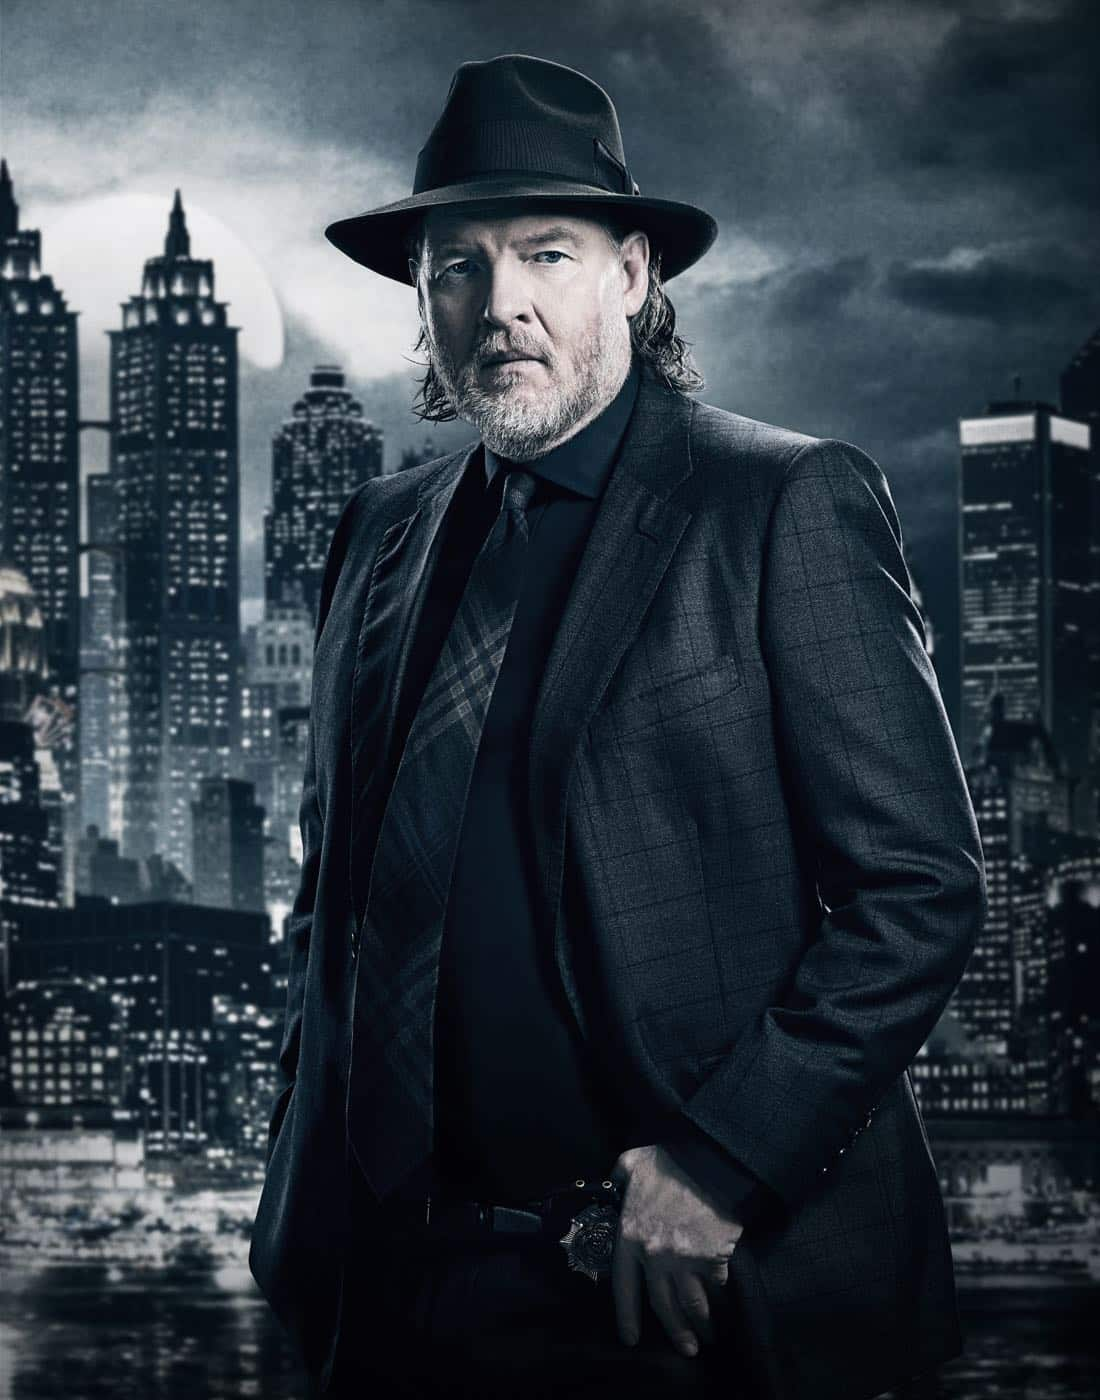 Donal Logue. Season 4 of GOTHAM